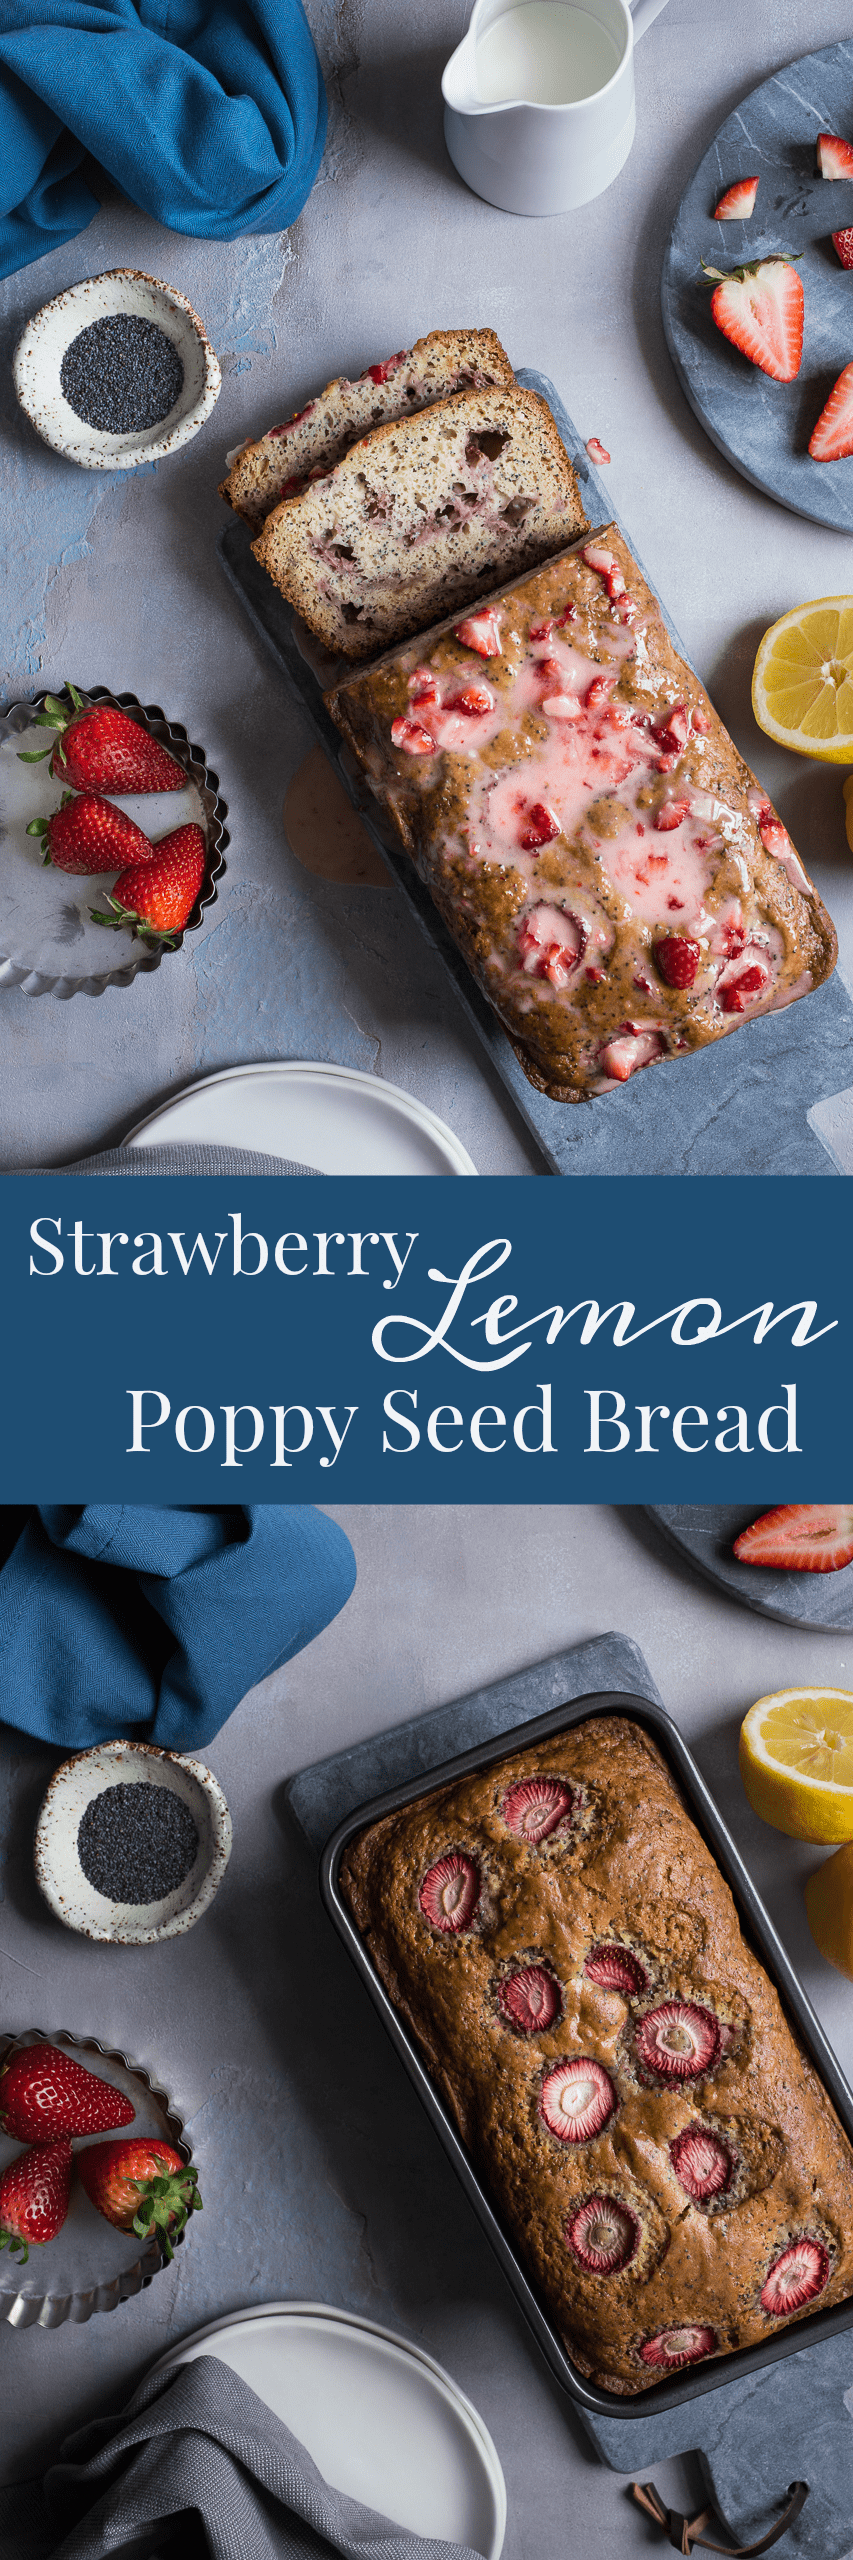 Strawberry Lemon Poppy Seed Bread with Strawberry Glaze